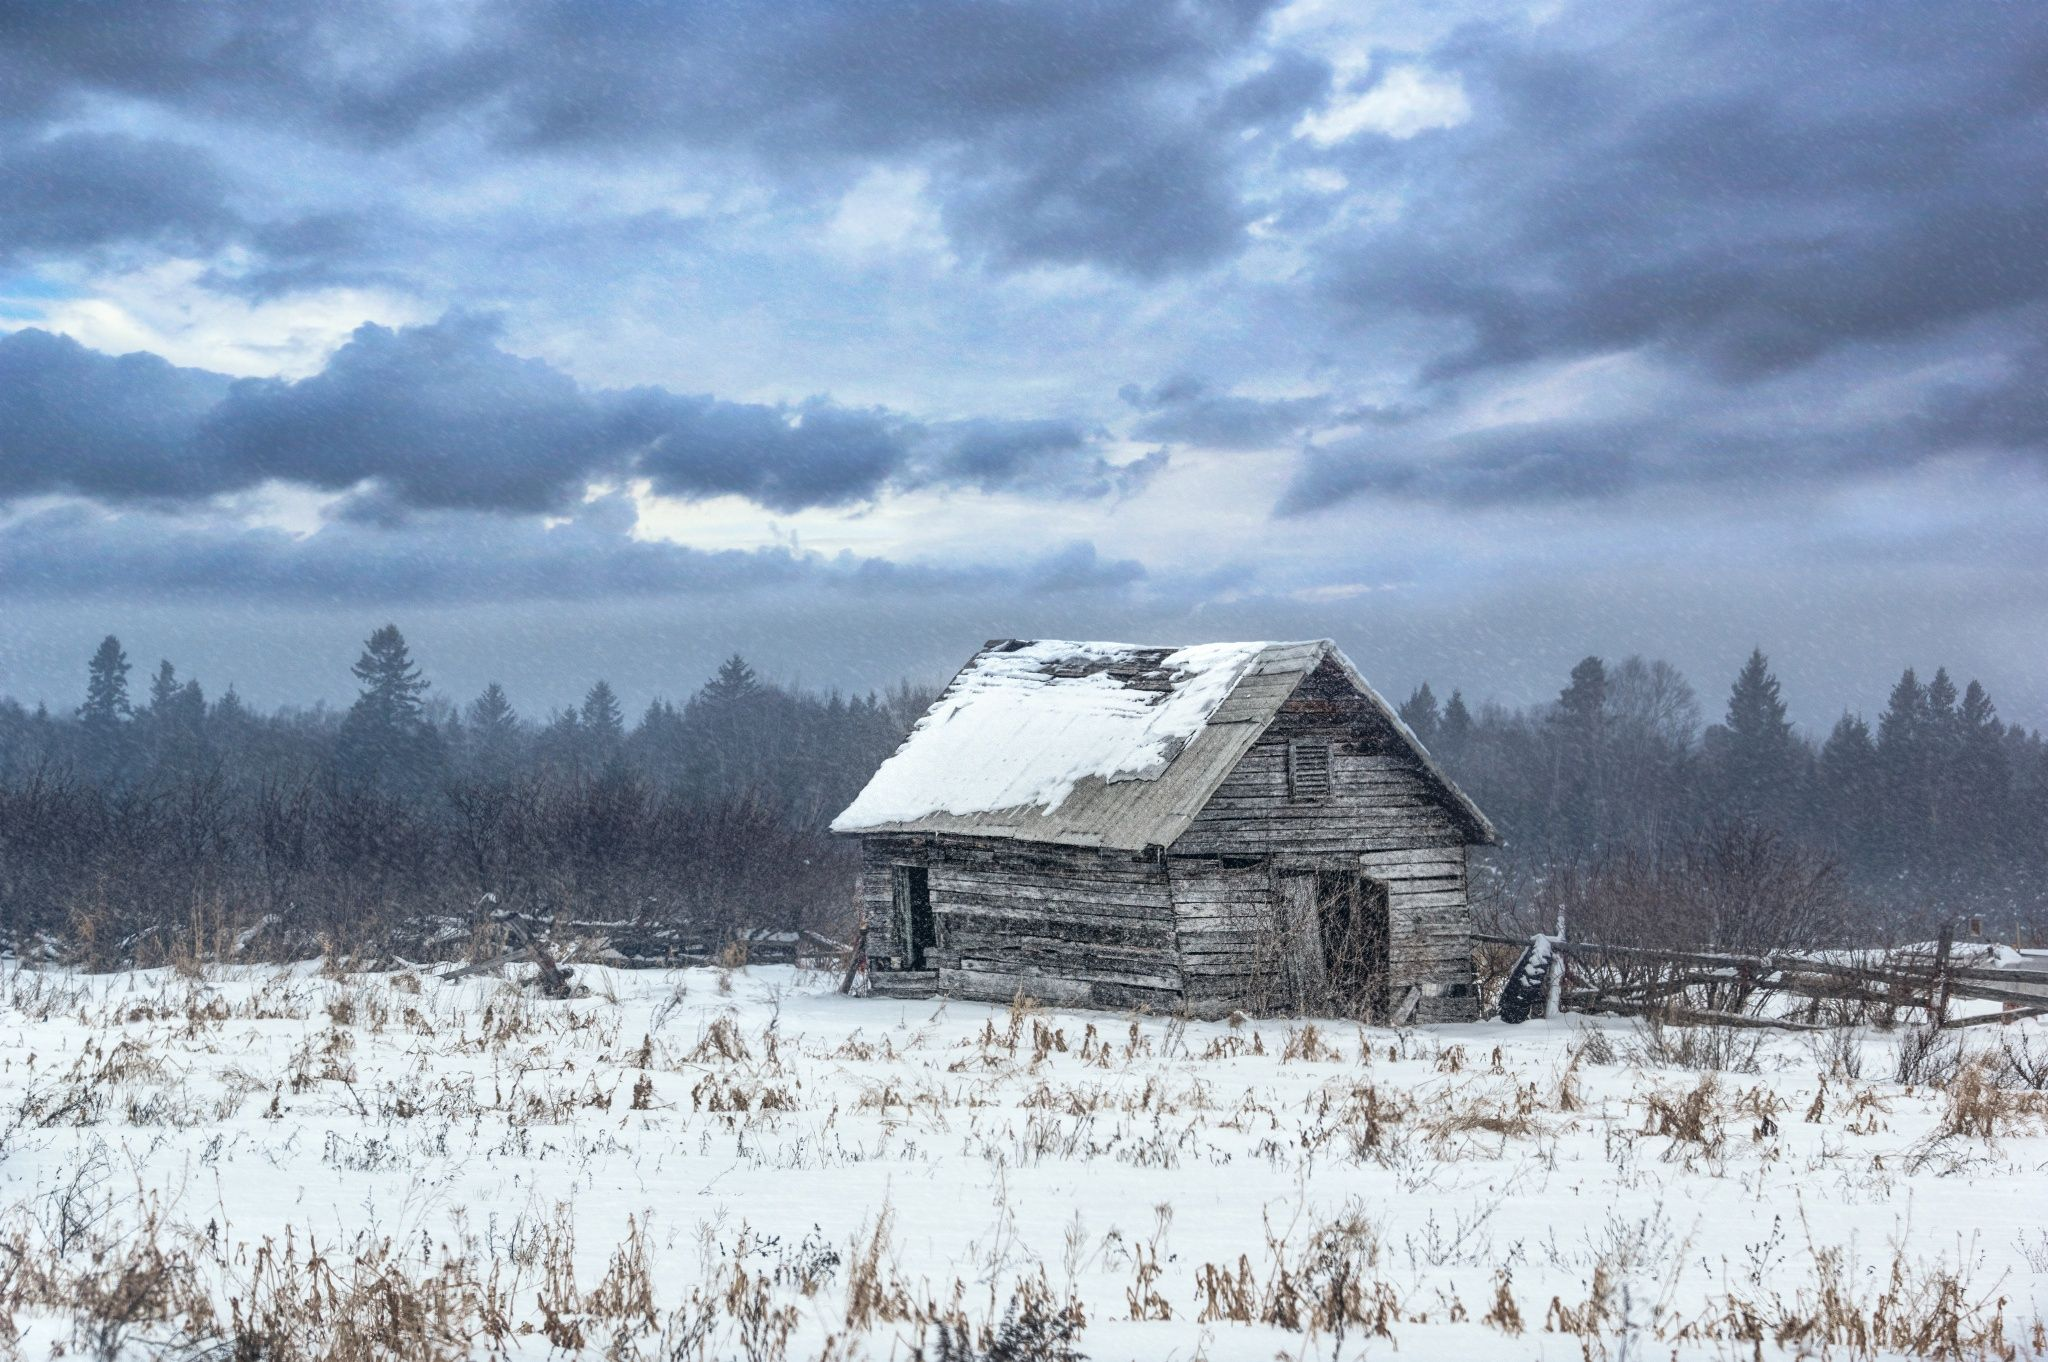 Brrrrrrr by Lee Bodson on 500px